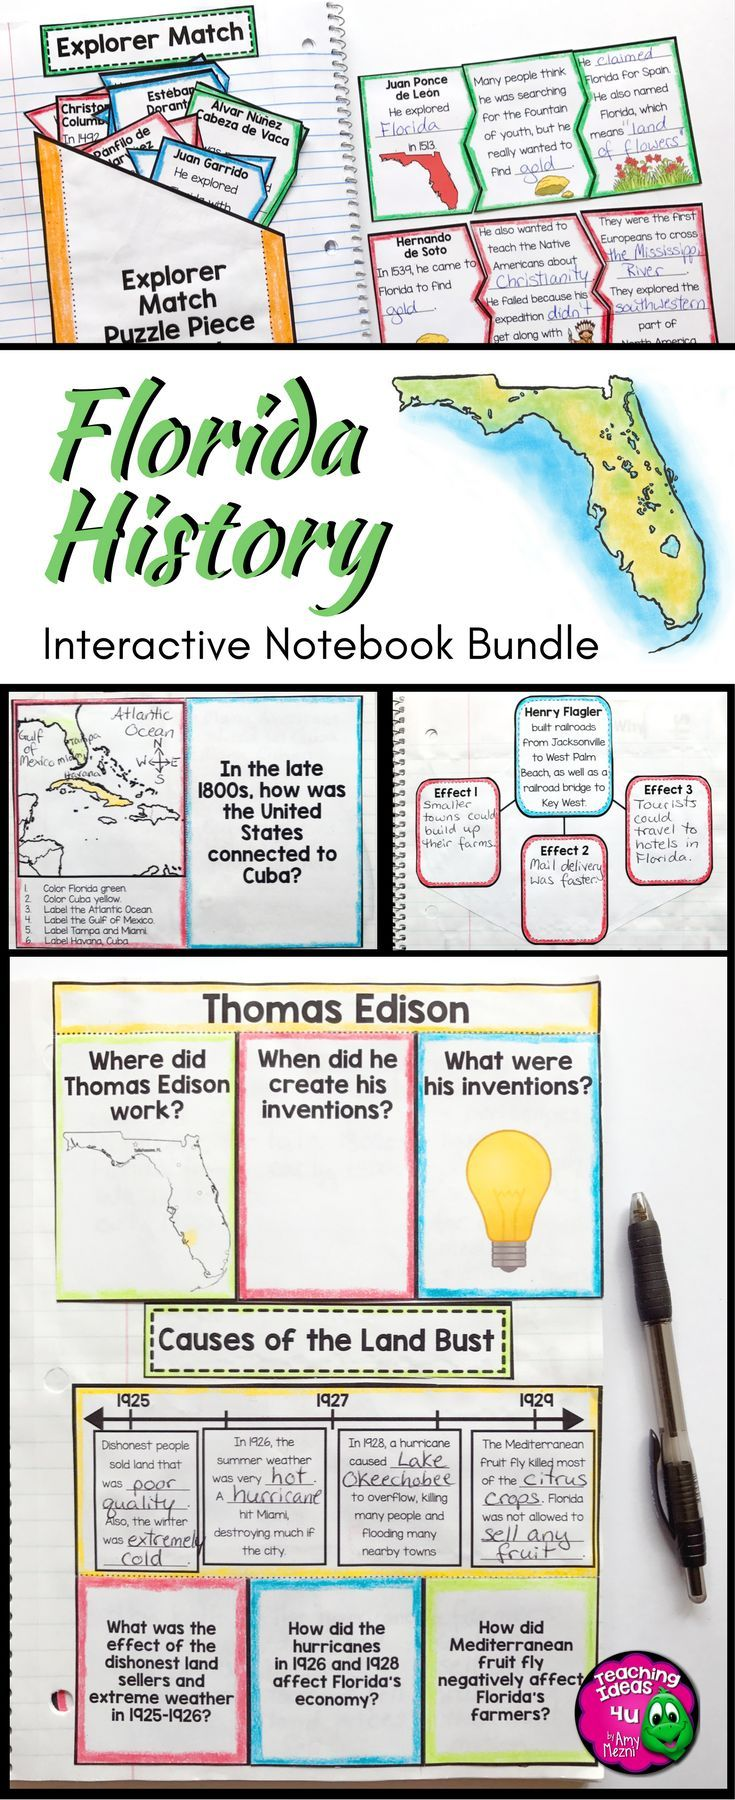 Best 25 Science notebook cover ideas on Pinterest  Idea lab Notebook cover design and Science